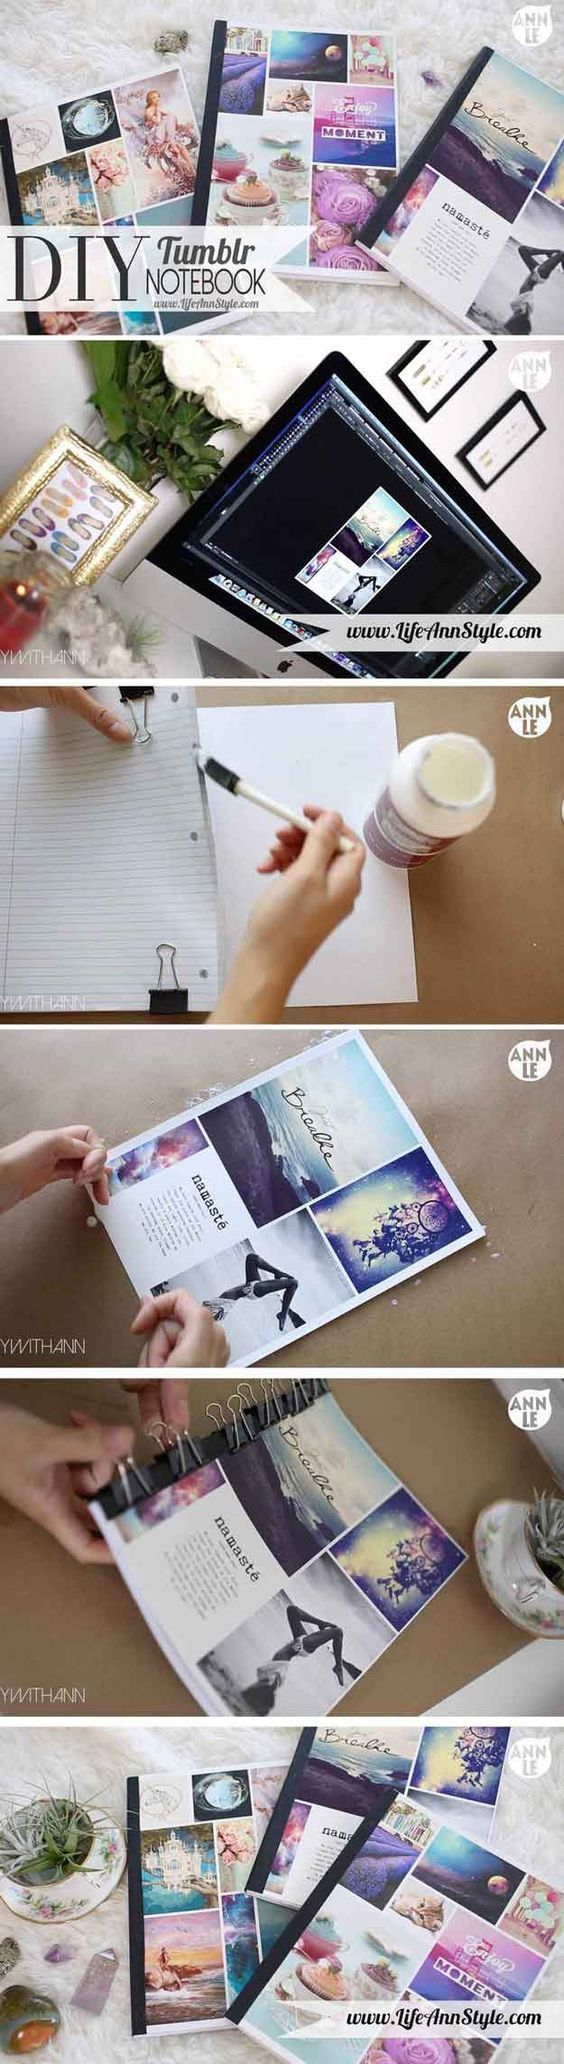 Fun DIY Projects for Teens | DIY Tumblr Notebook by DIY Ready at diyready.com/...